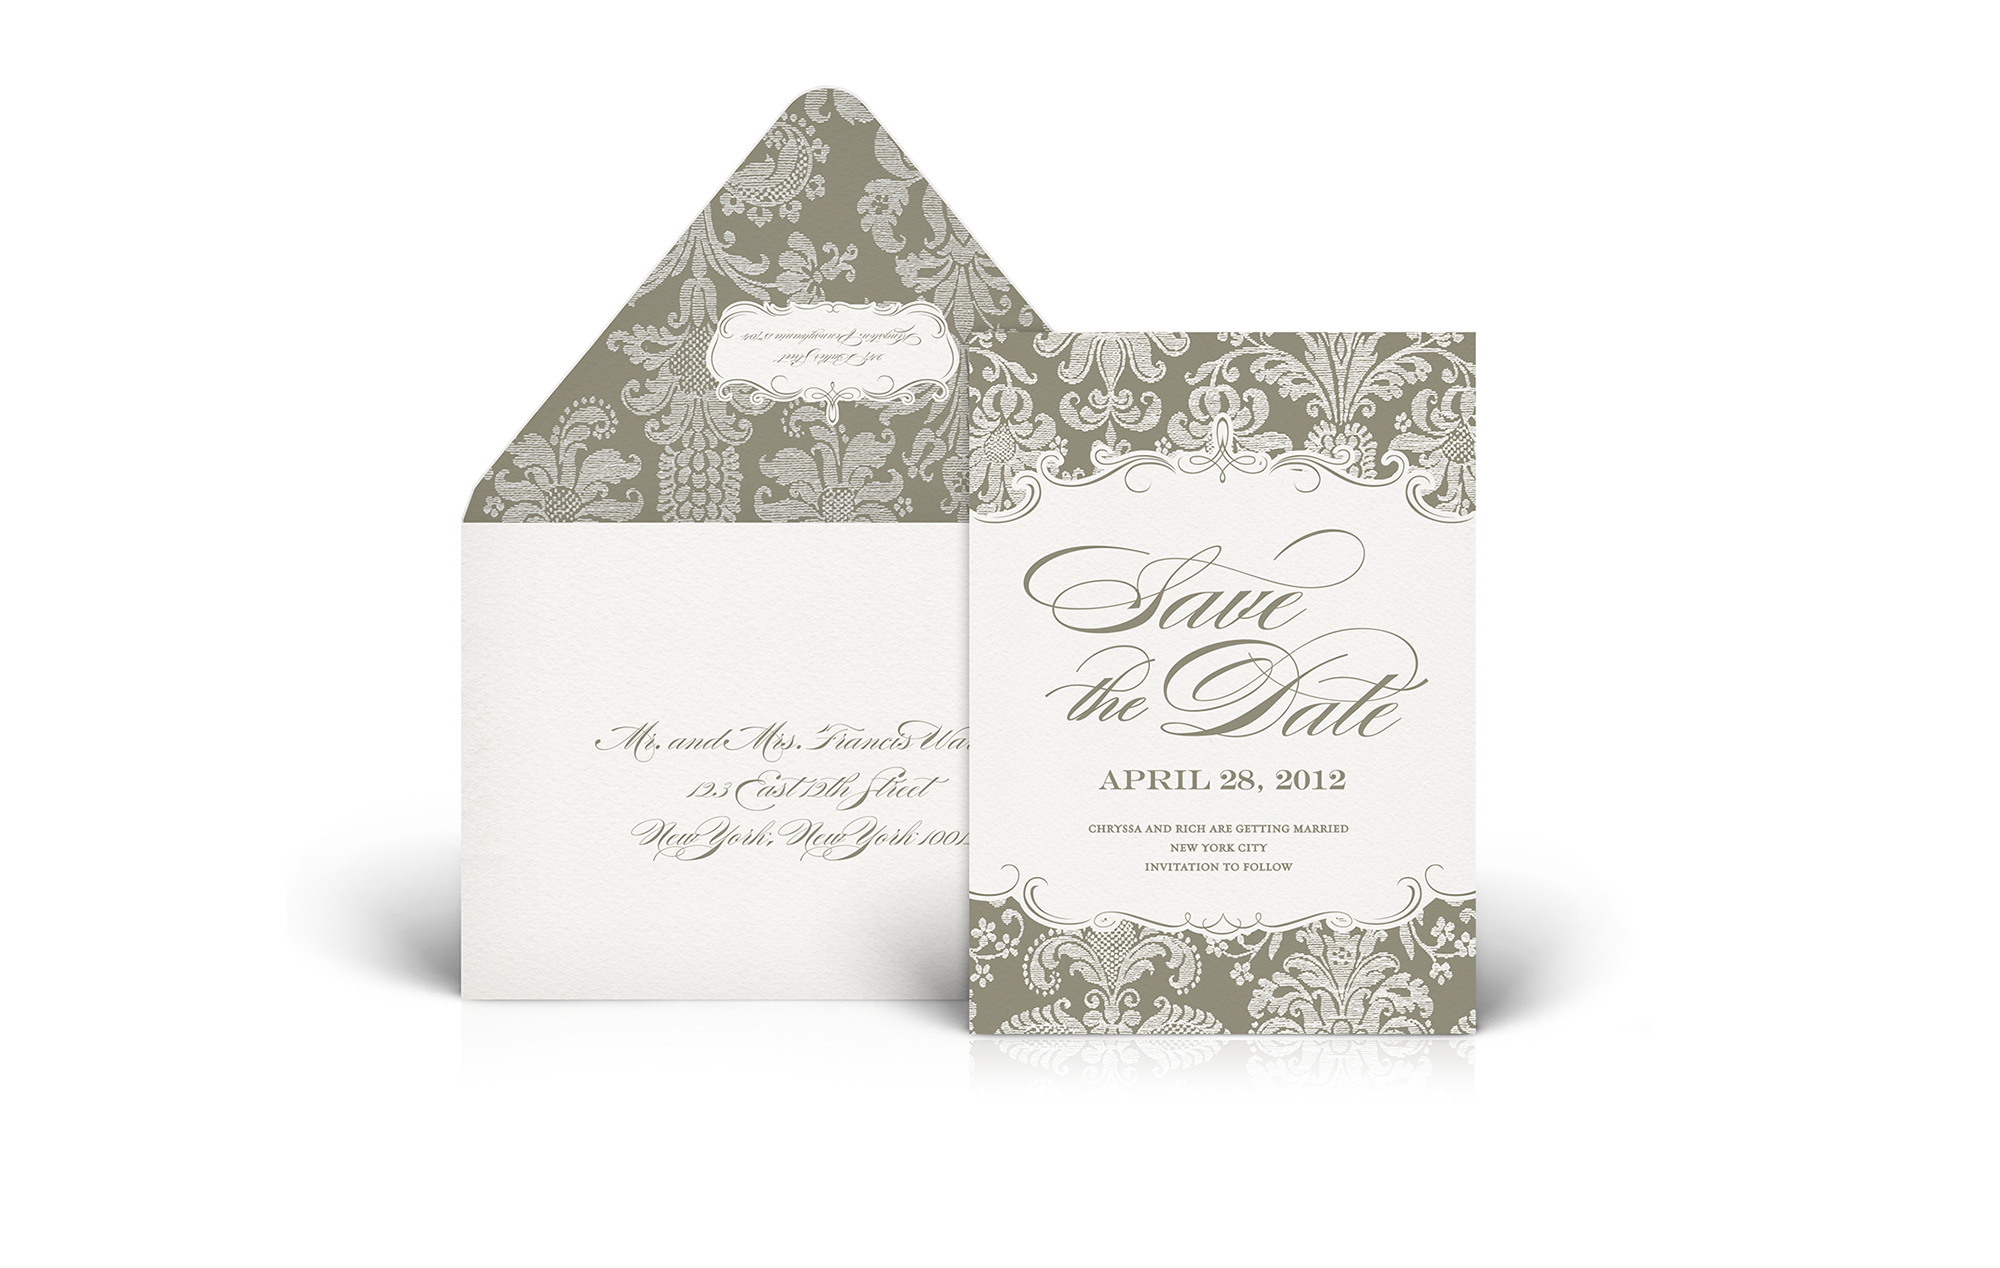 Damask print save the date